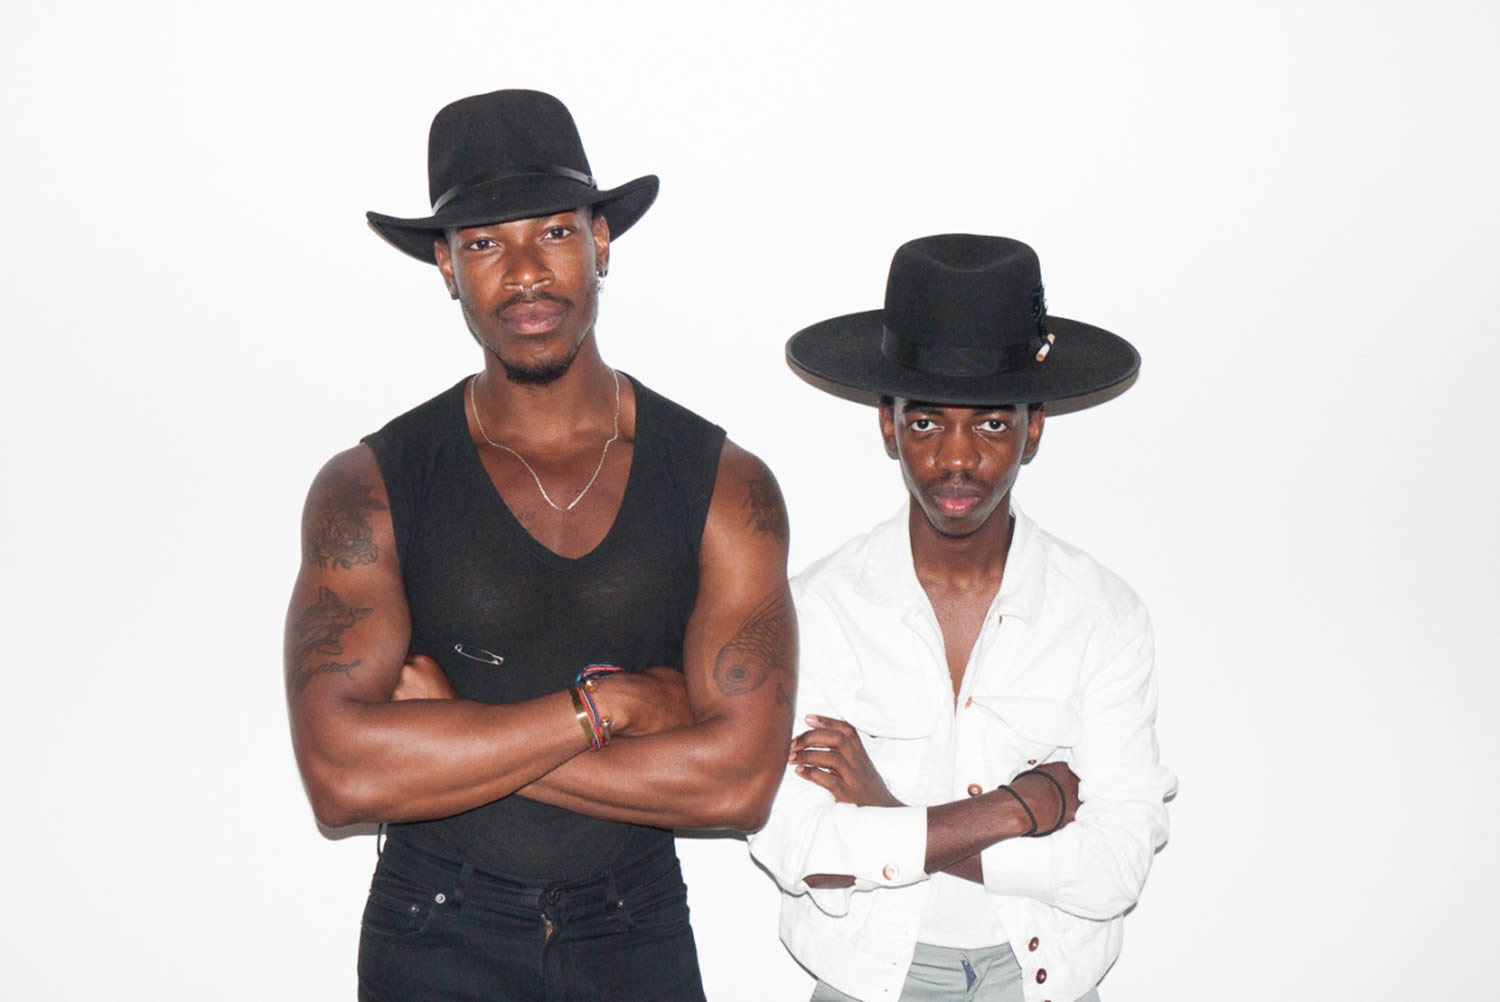 two men posing with hats, photo